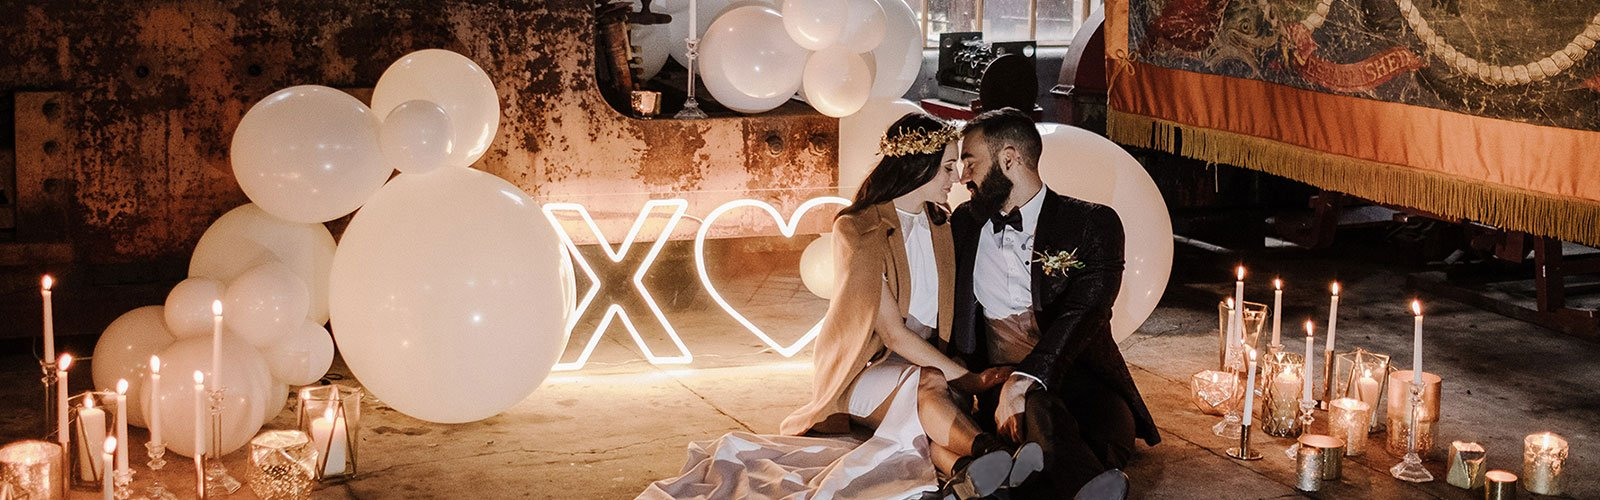 Wedding neon signs: X Heart